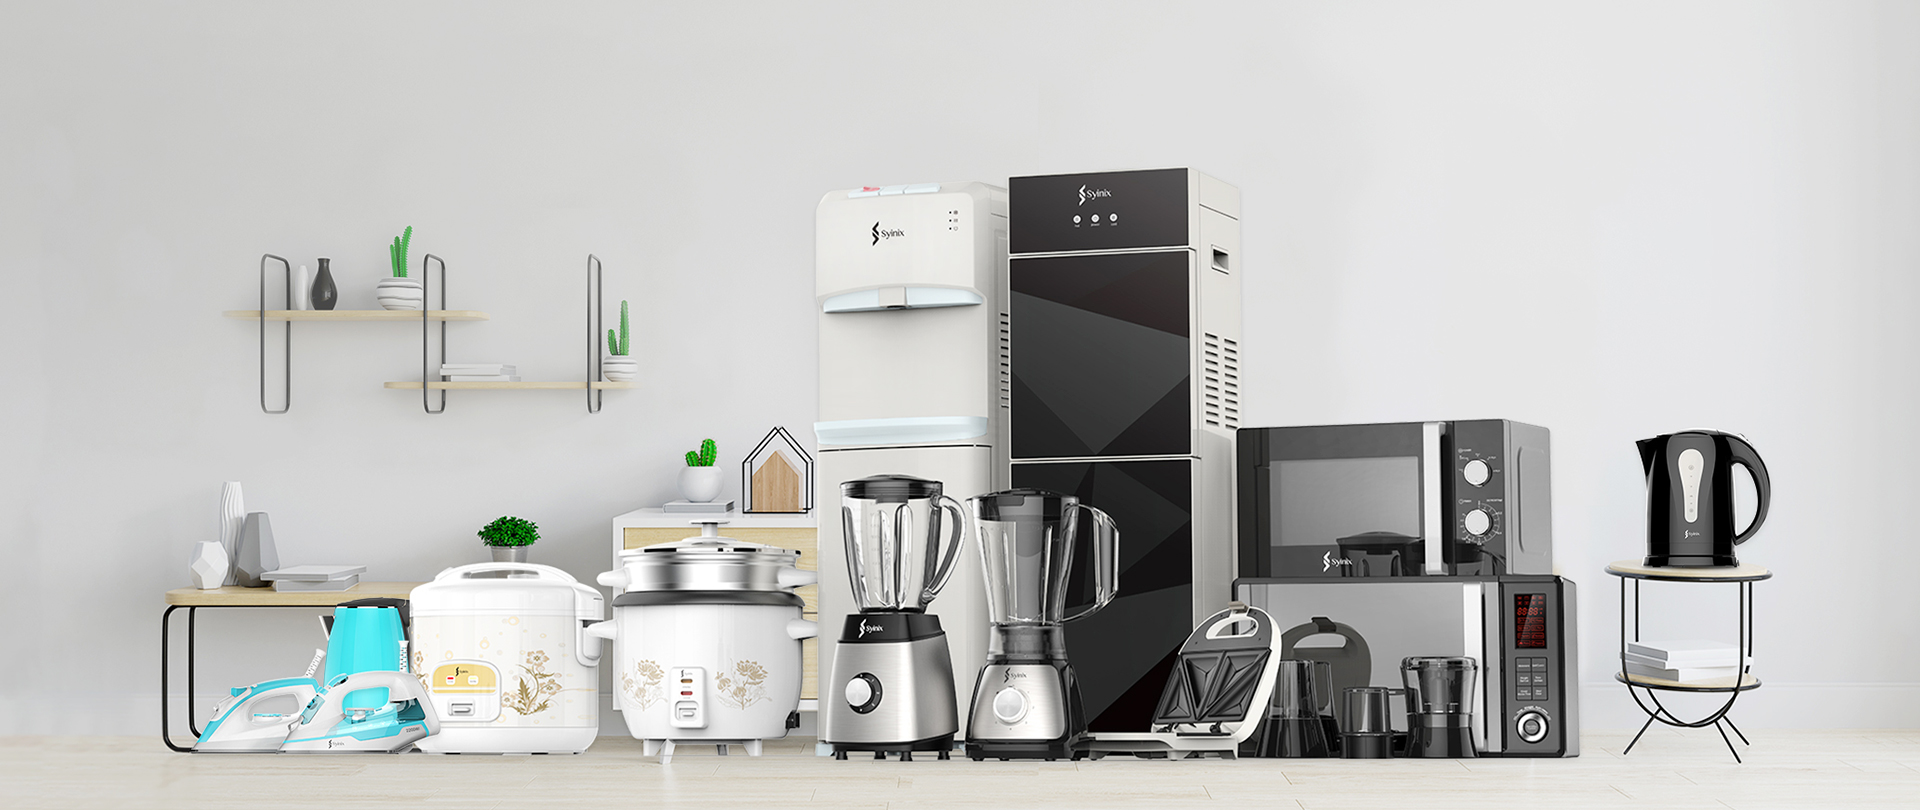 Three Kitchen Appliances You Should Have in 2021